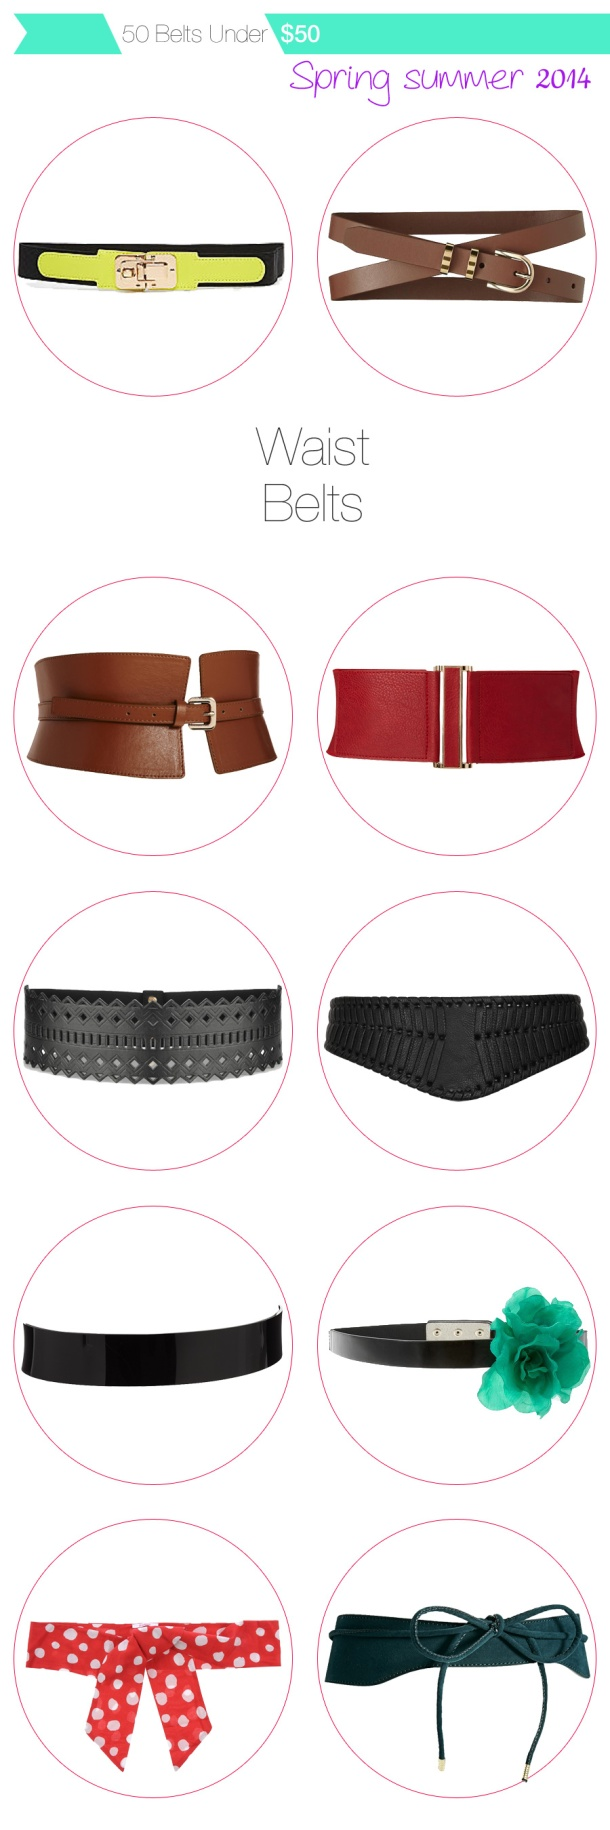 50-belts-under-$50-spring-summer-2014-waist-belts